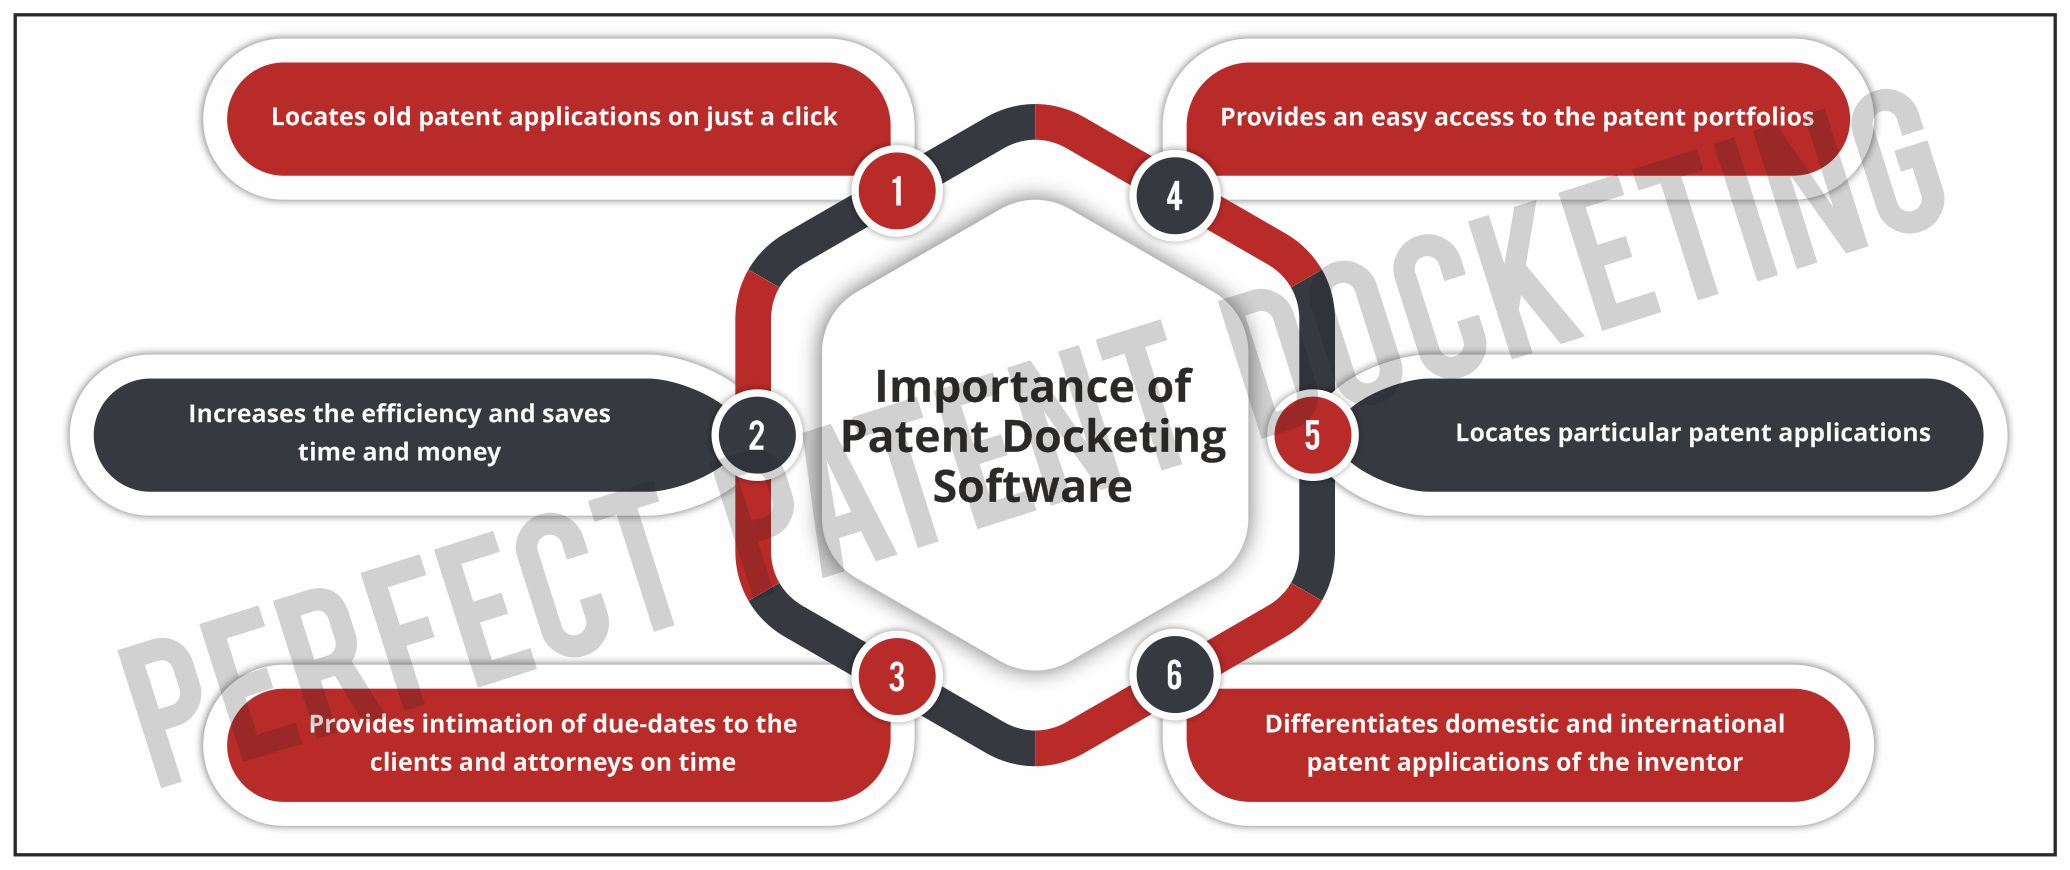 Patent Docketing Software - Its Importance